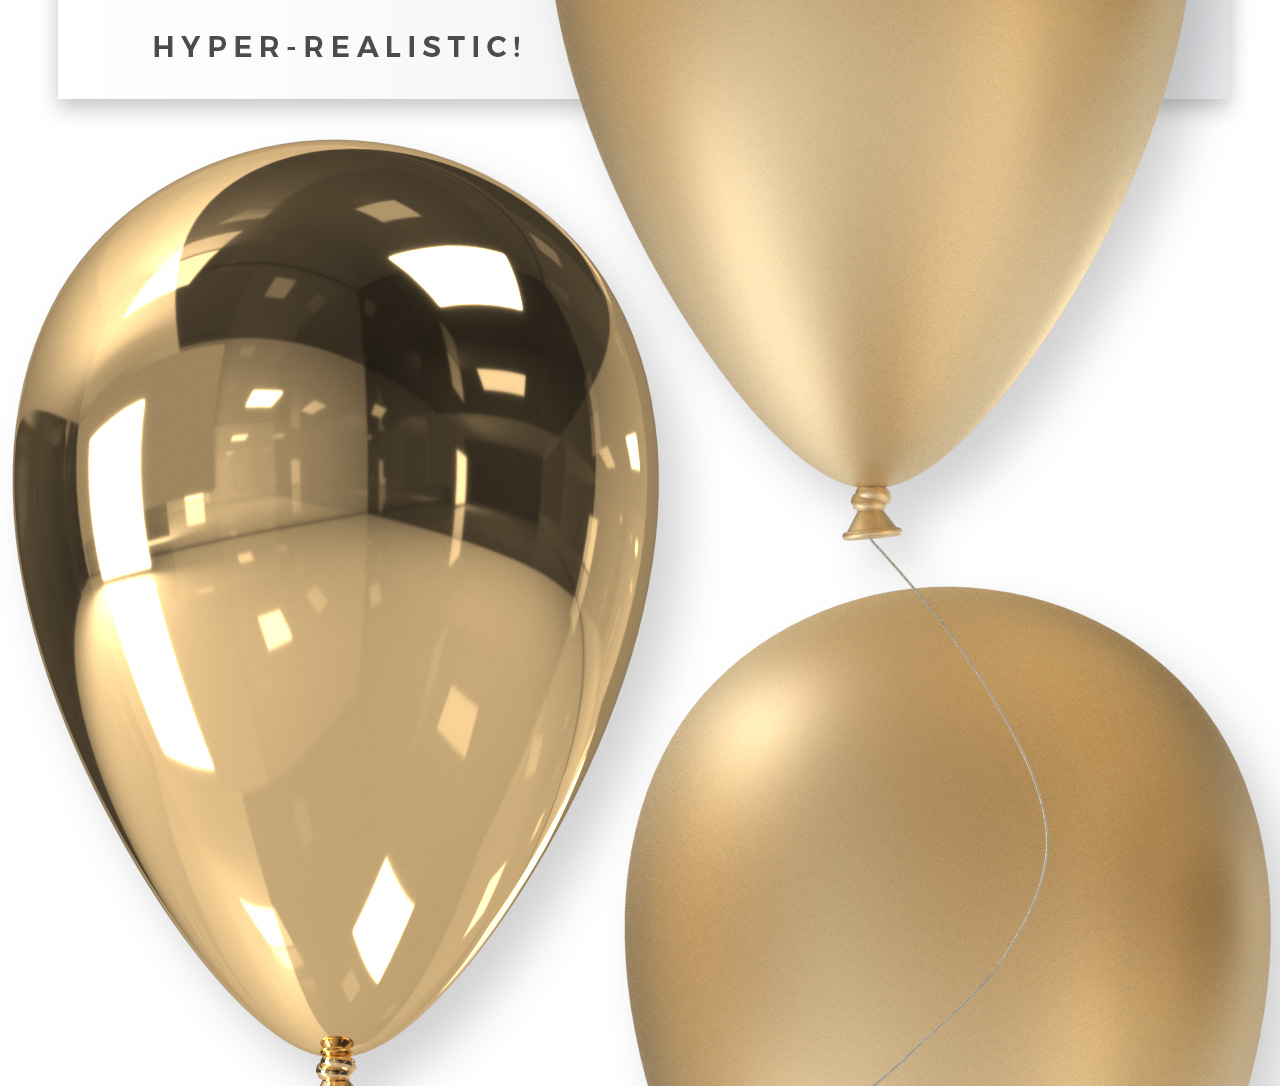 Realistic Balloon Clipart - Transparent PNGs